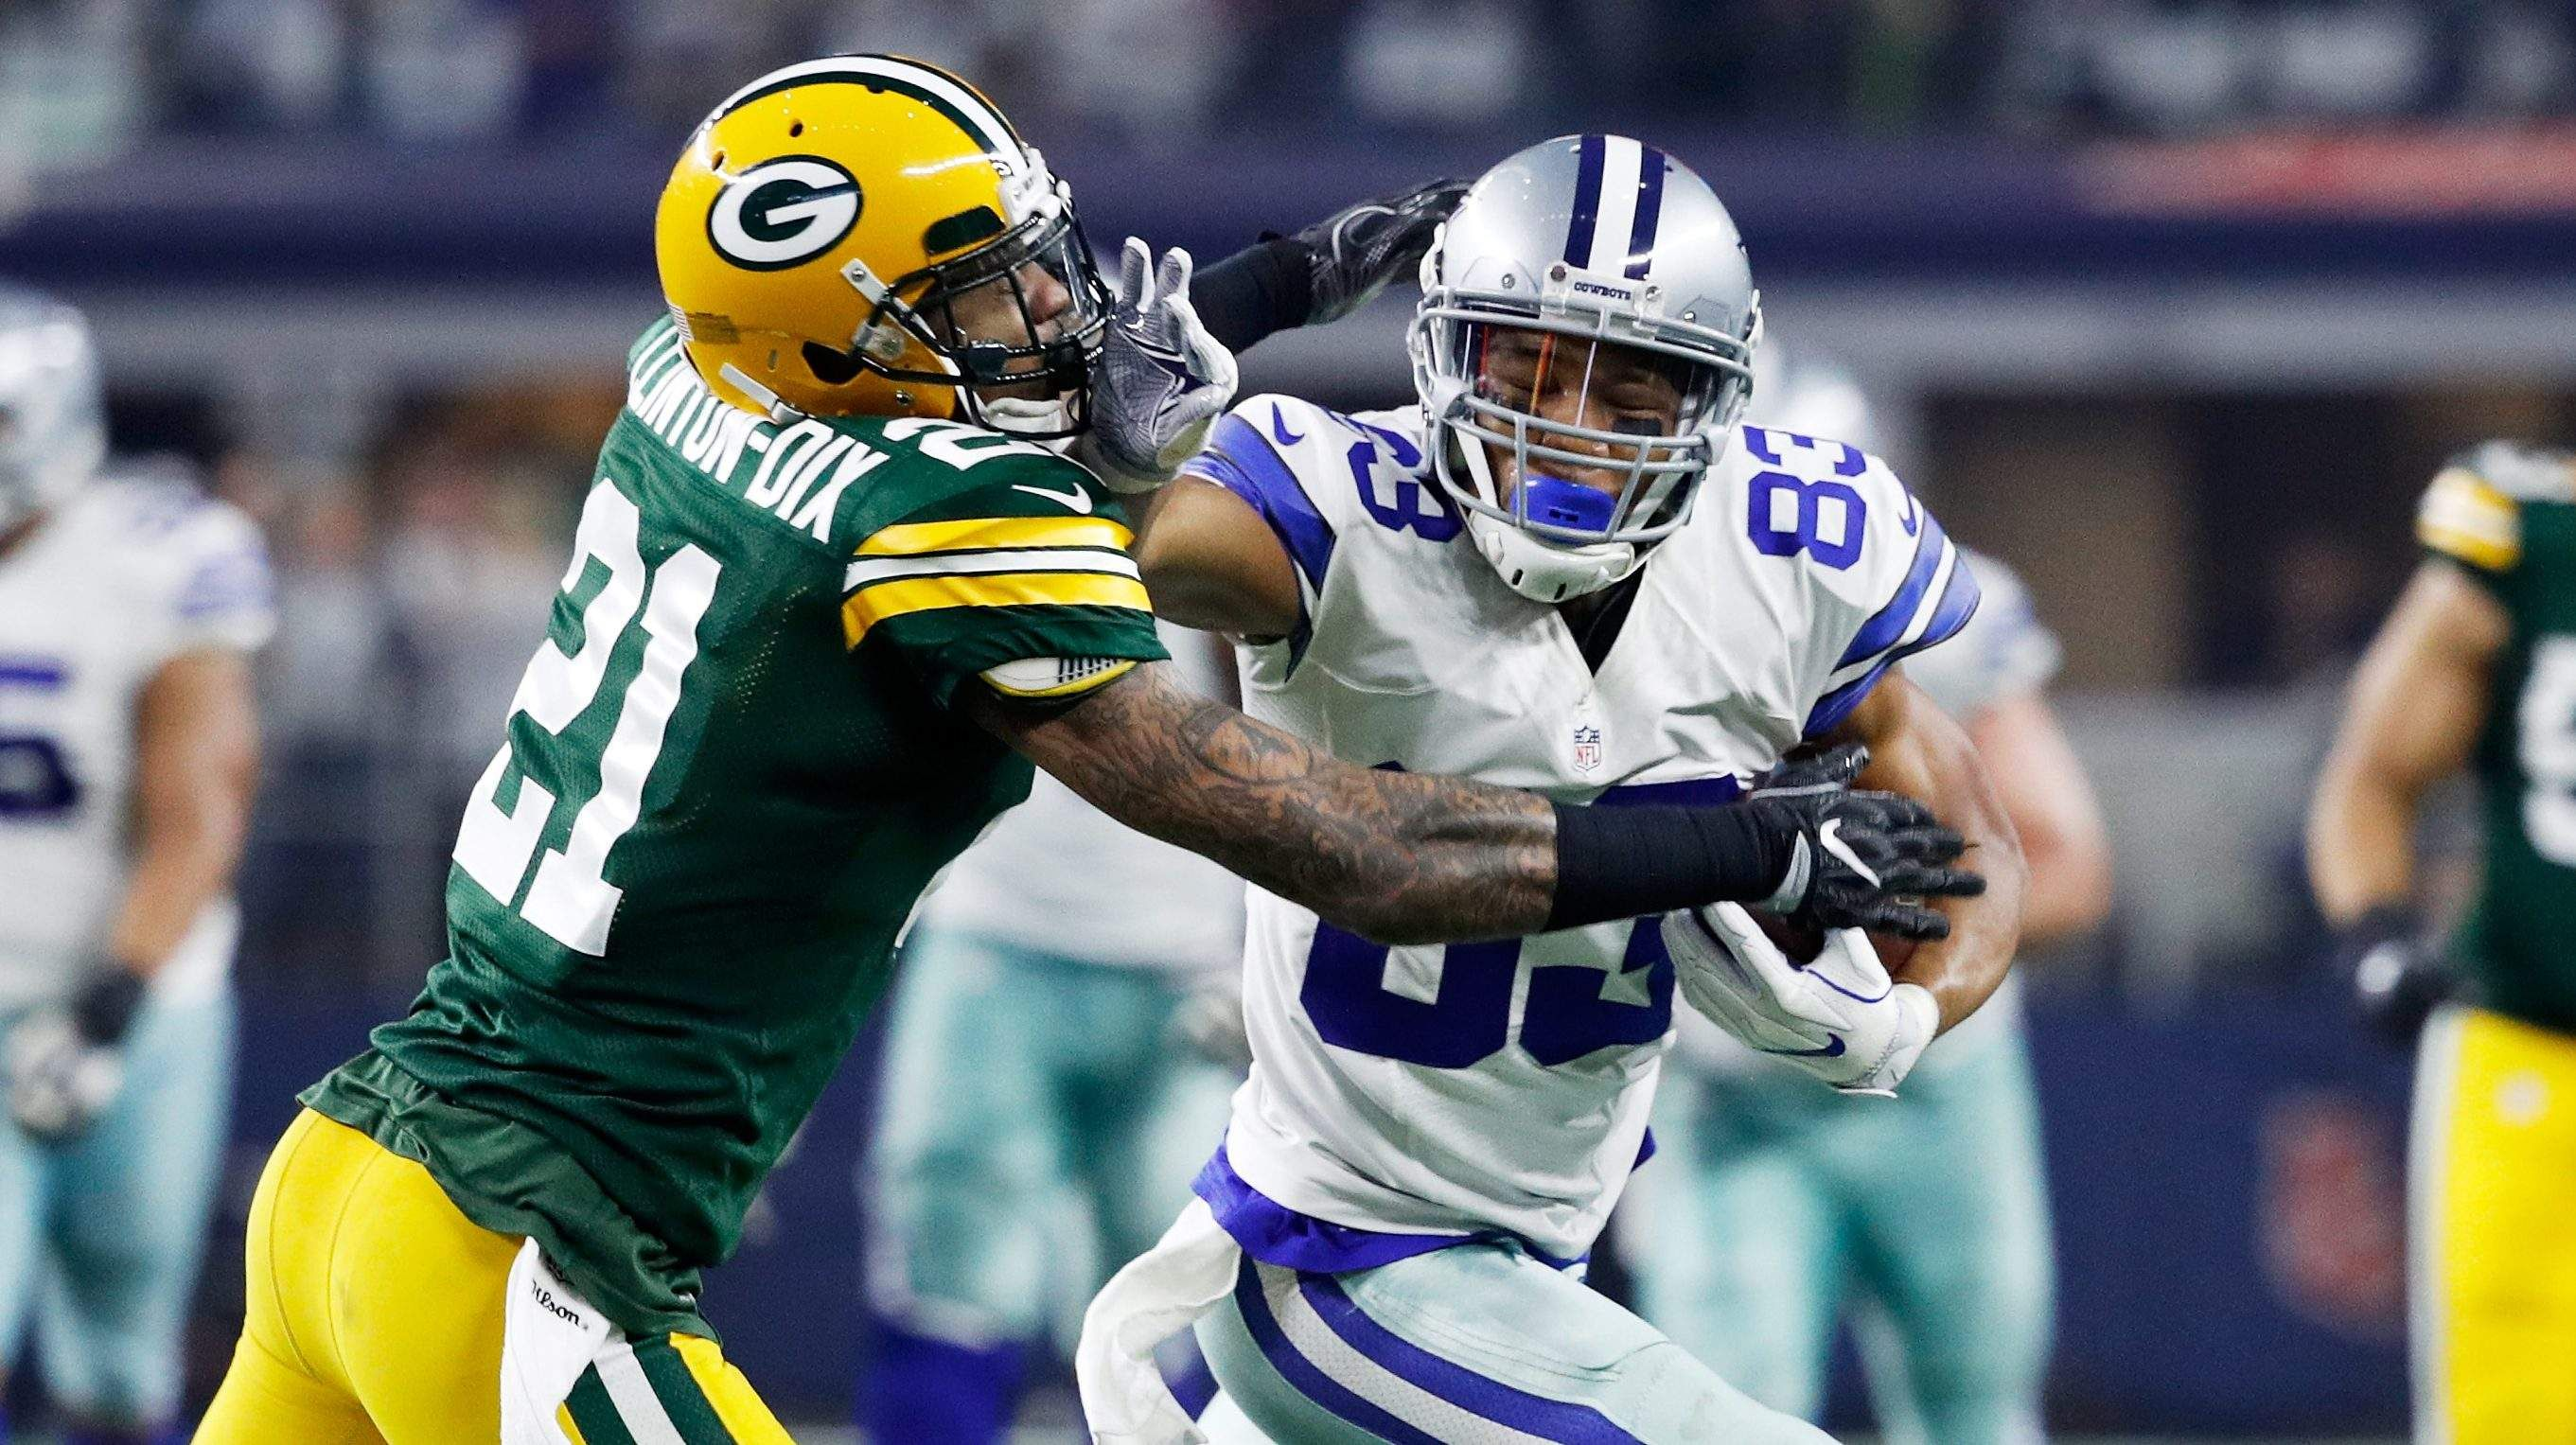 Cowboys Vs Packers Predictions Can Dallas Win The Week 5 Game After Losing To The Saints Cowboys Vs Packers Cowboys Vs Nfl Week